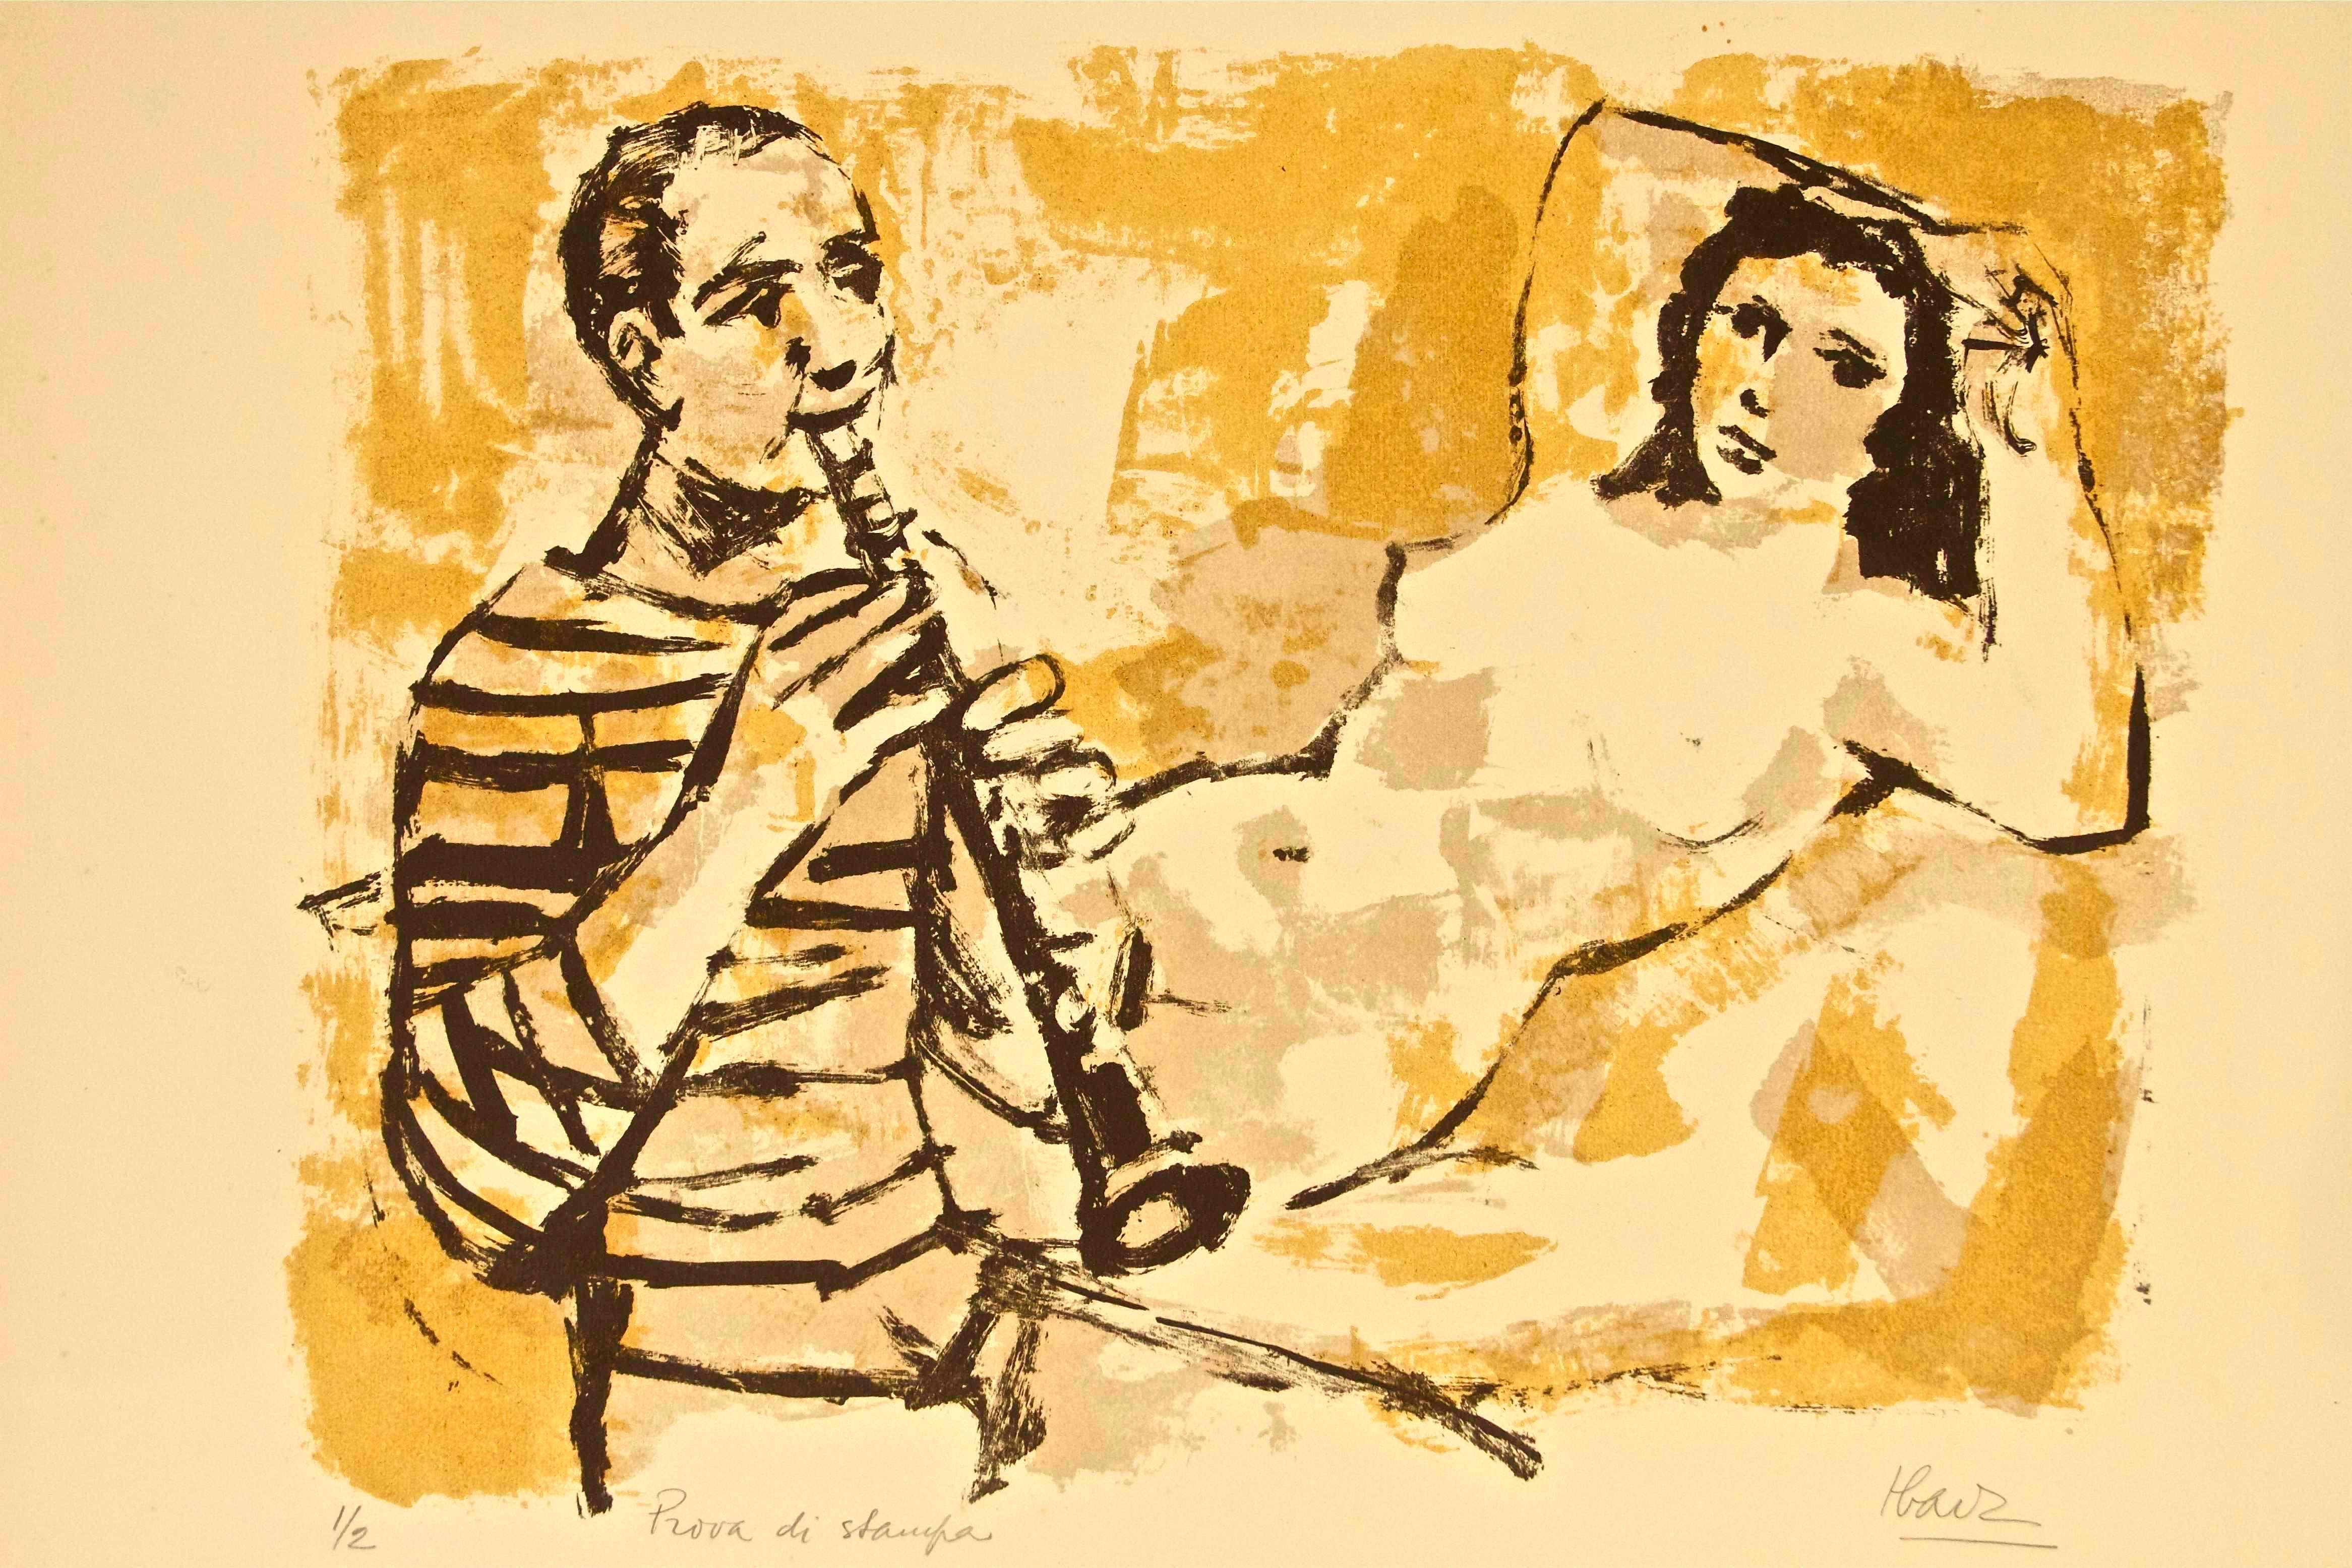 Model with Musician - Original Lithograph by Miguel Ibarz - Late 1900